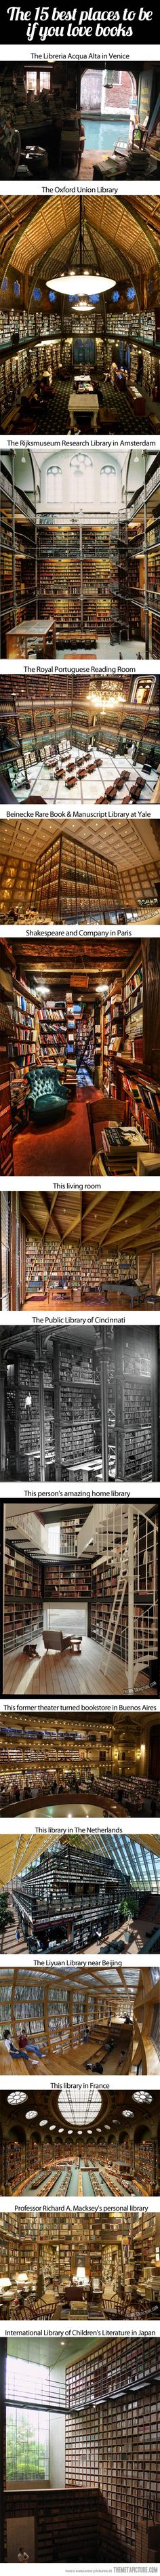 dream library | beautiful libraries and bookstores around the world